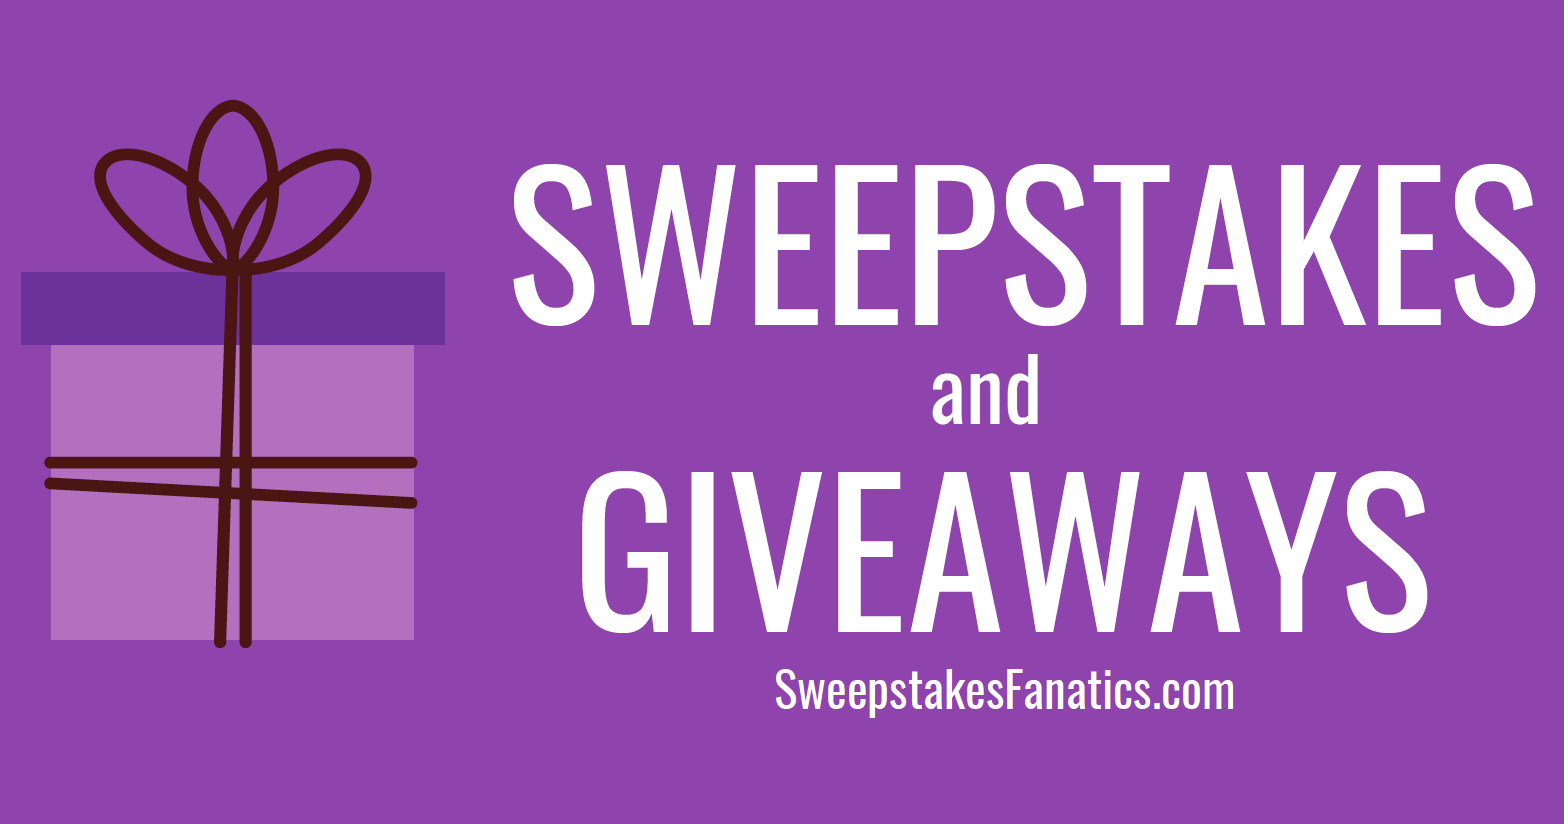 Win Online Sweepstakes and Contests 2019 - Sweepstakes Fanatics